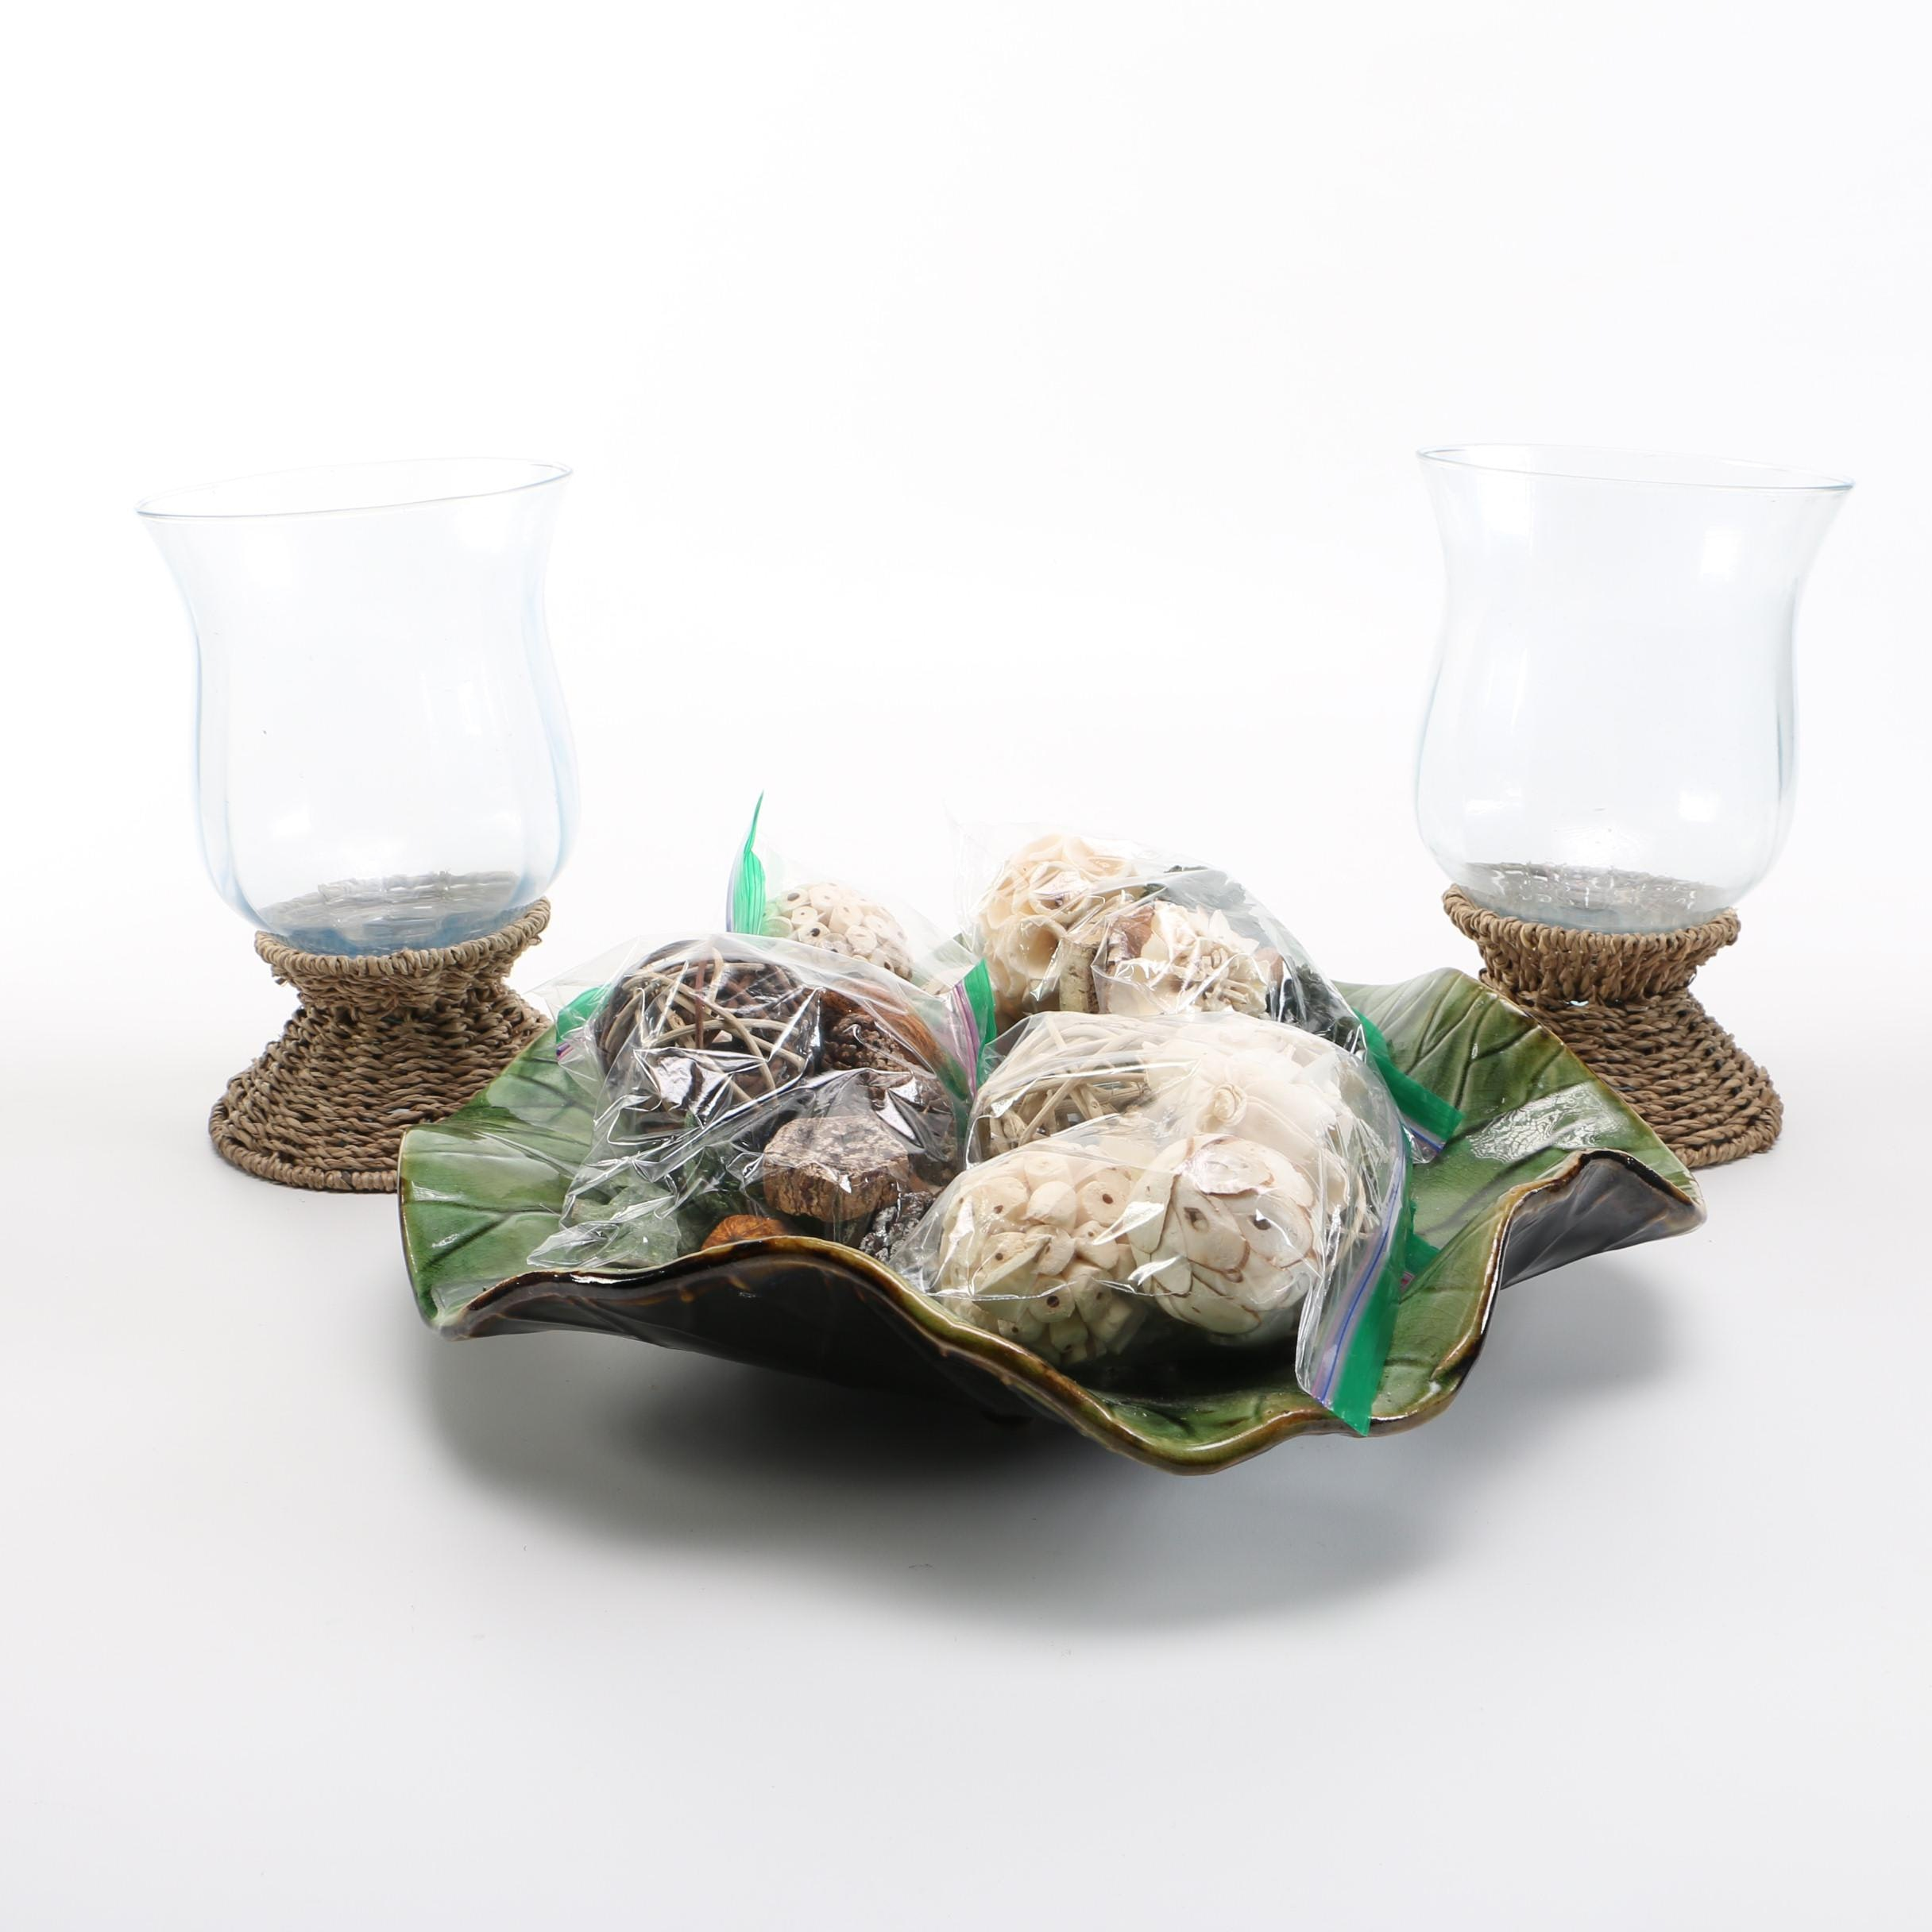 Pair of Candleholders and Lily Pad Centerpiece With Decorative Potpourri